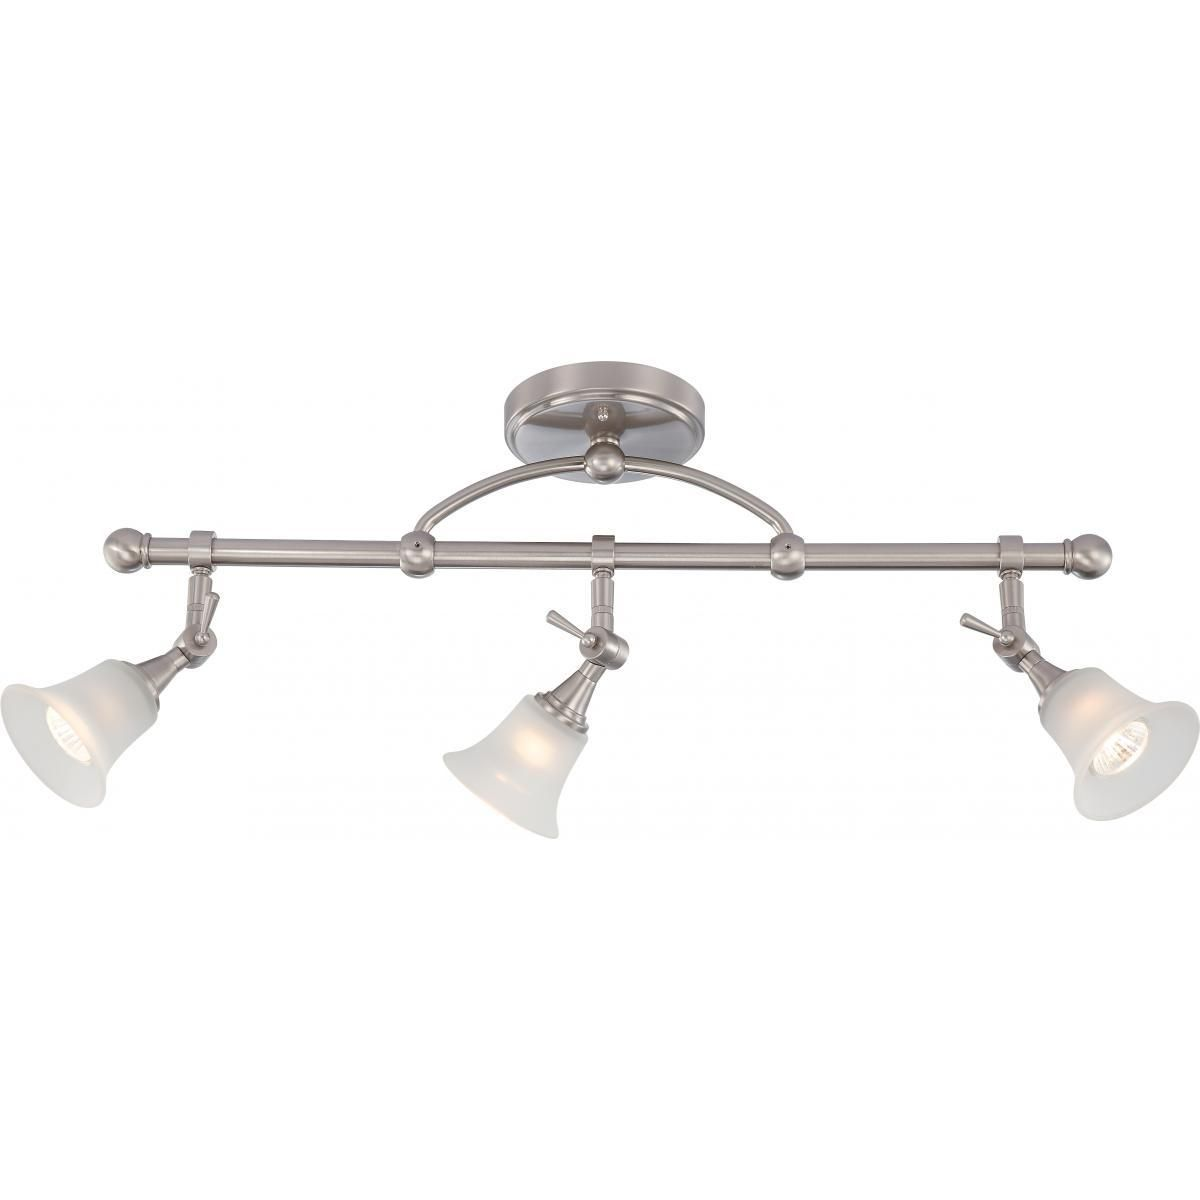 Surrey 3 Light Fixed Track Bar With Frosted Glass 3 50w Halogen